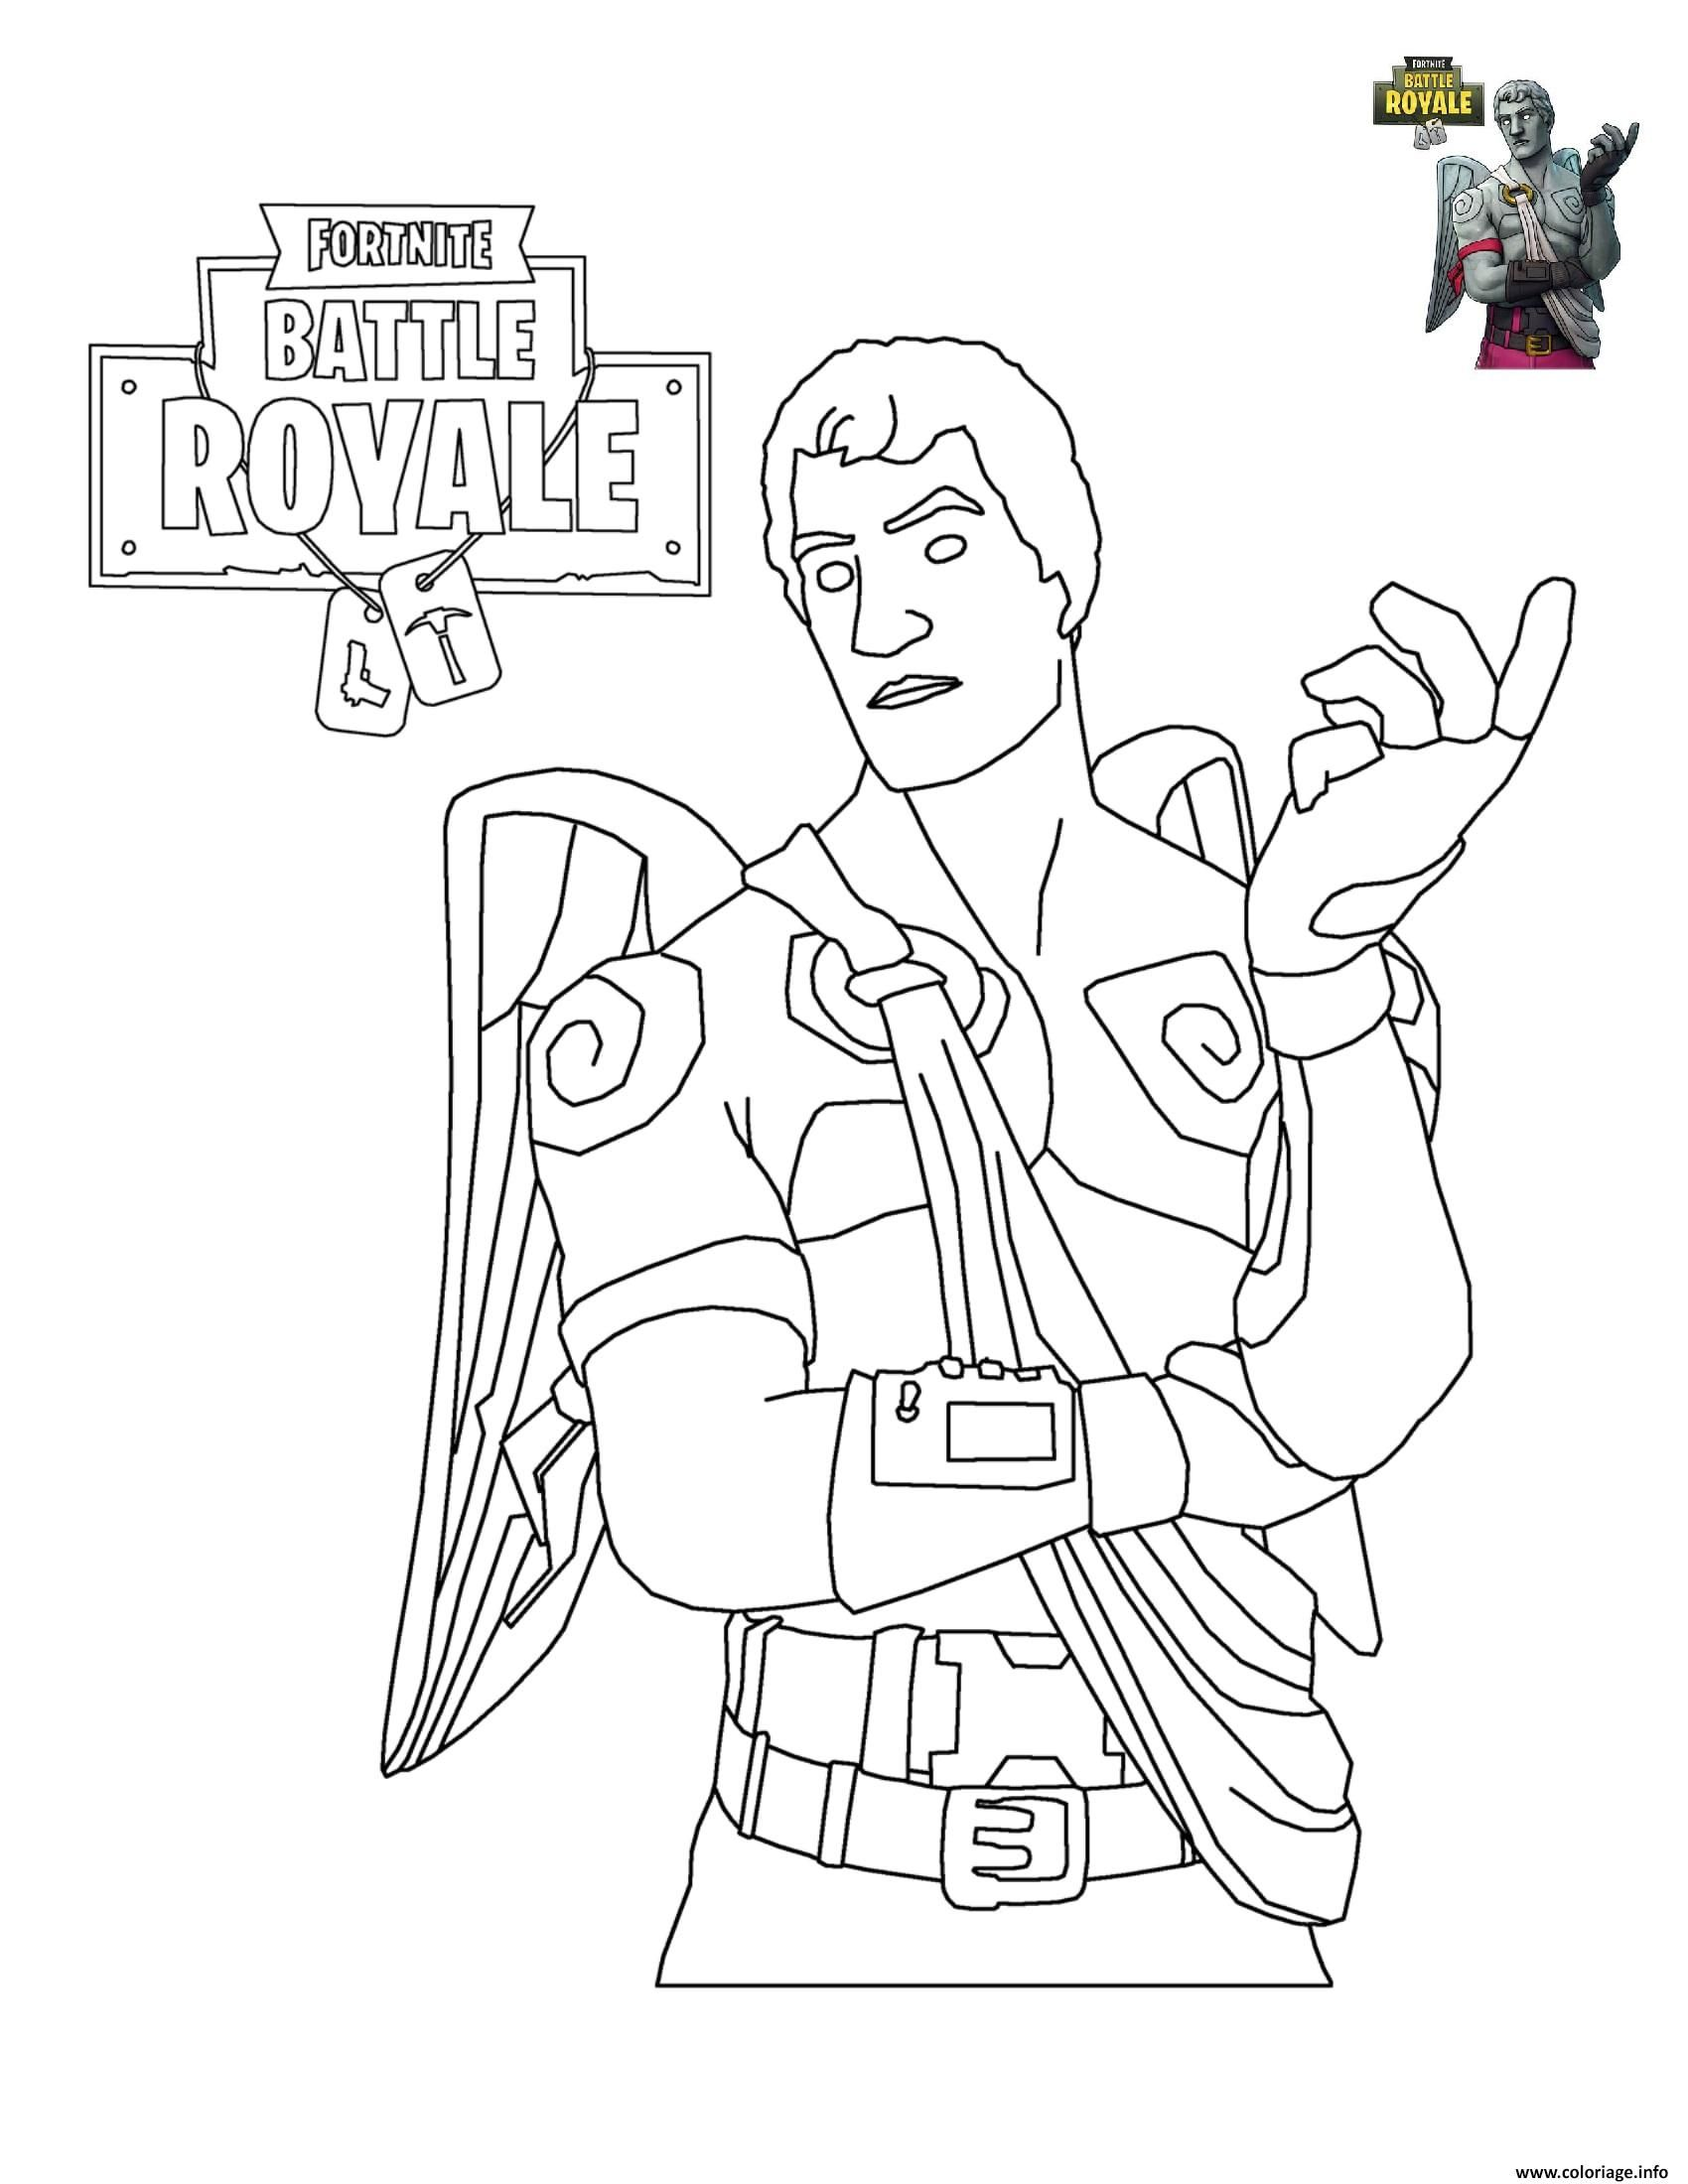 Coloriage Fortnite Battle Royale Personnage 6 A Imprimer